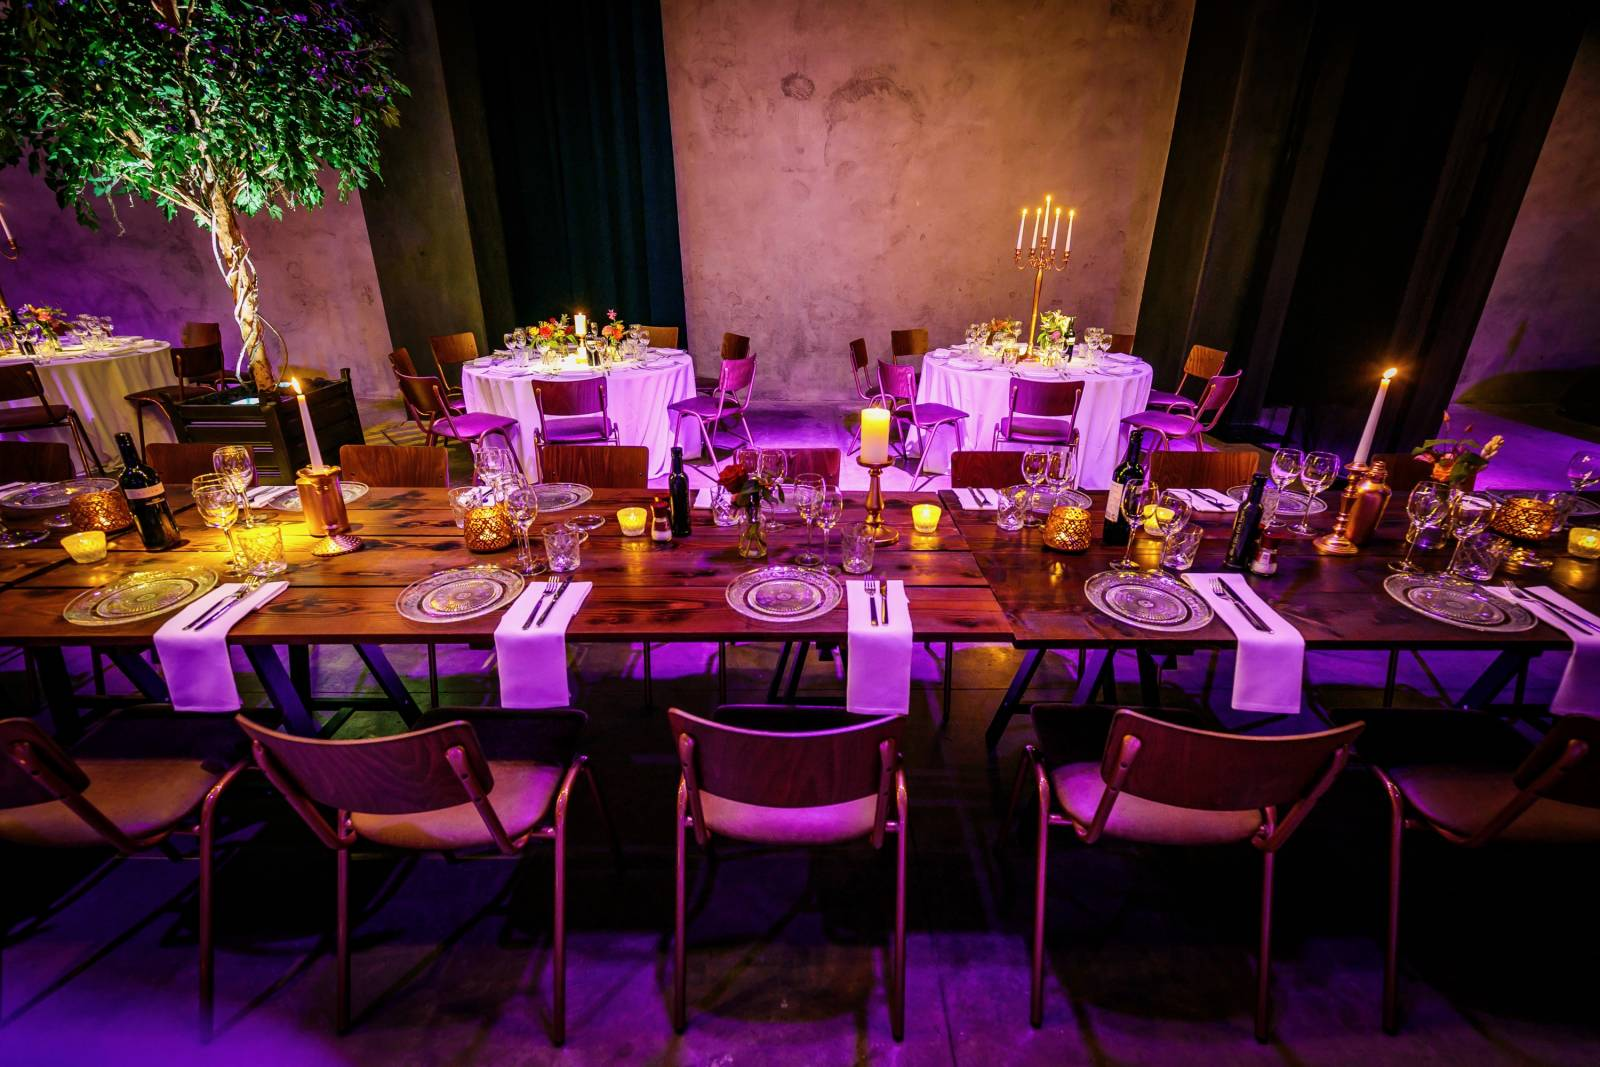 Watt17 - Feestzaal huwelijk - Taste Catering - Nicolas Herbots Photography - House of Weddings - 3